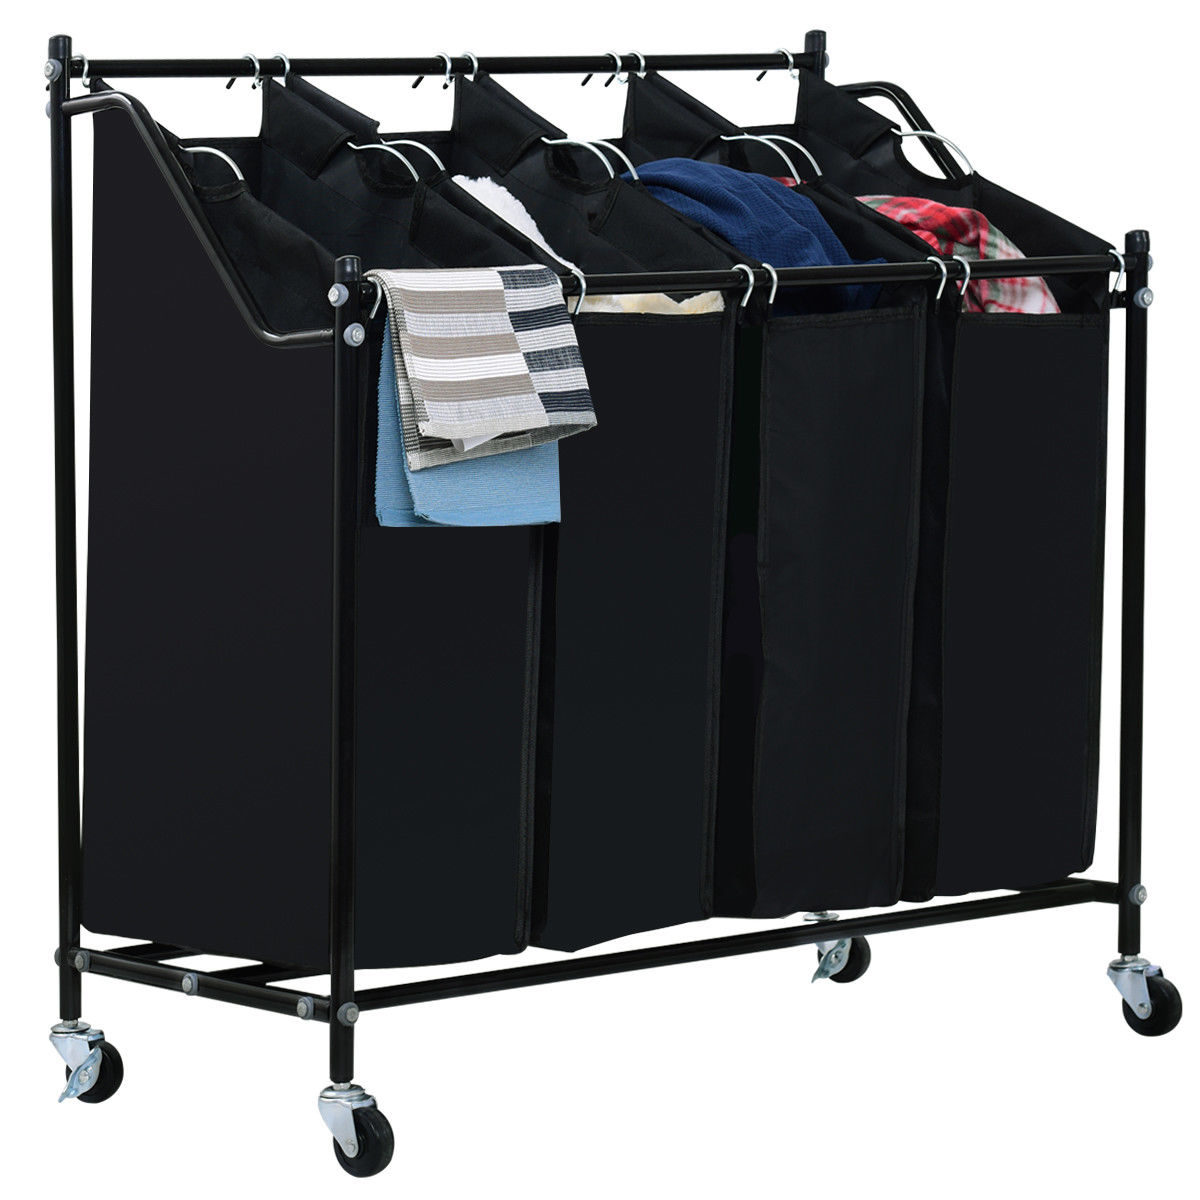 Costway 4 Bag Rolling Laundry Sorter Cart Hamper Organizer Compact Basket Heavy Duty